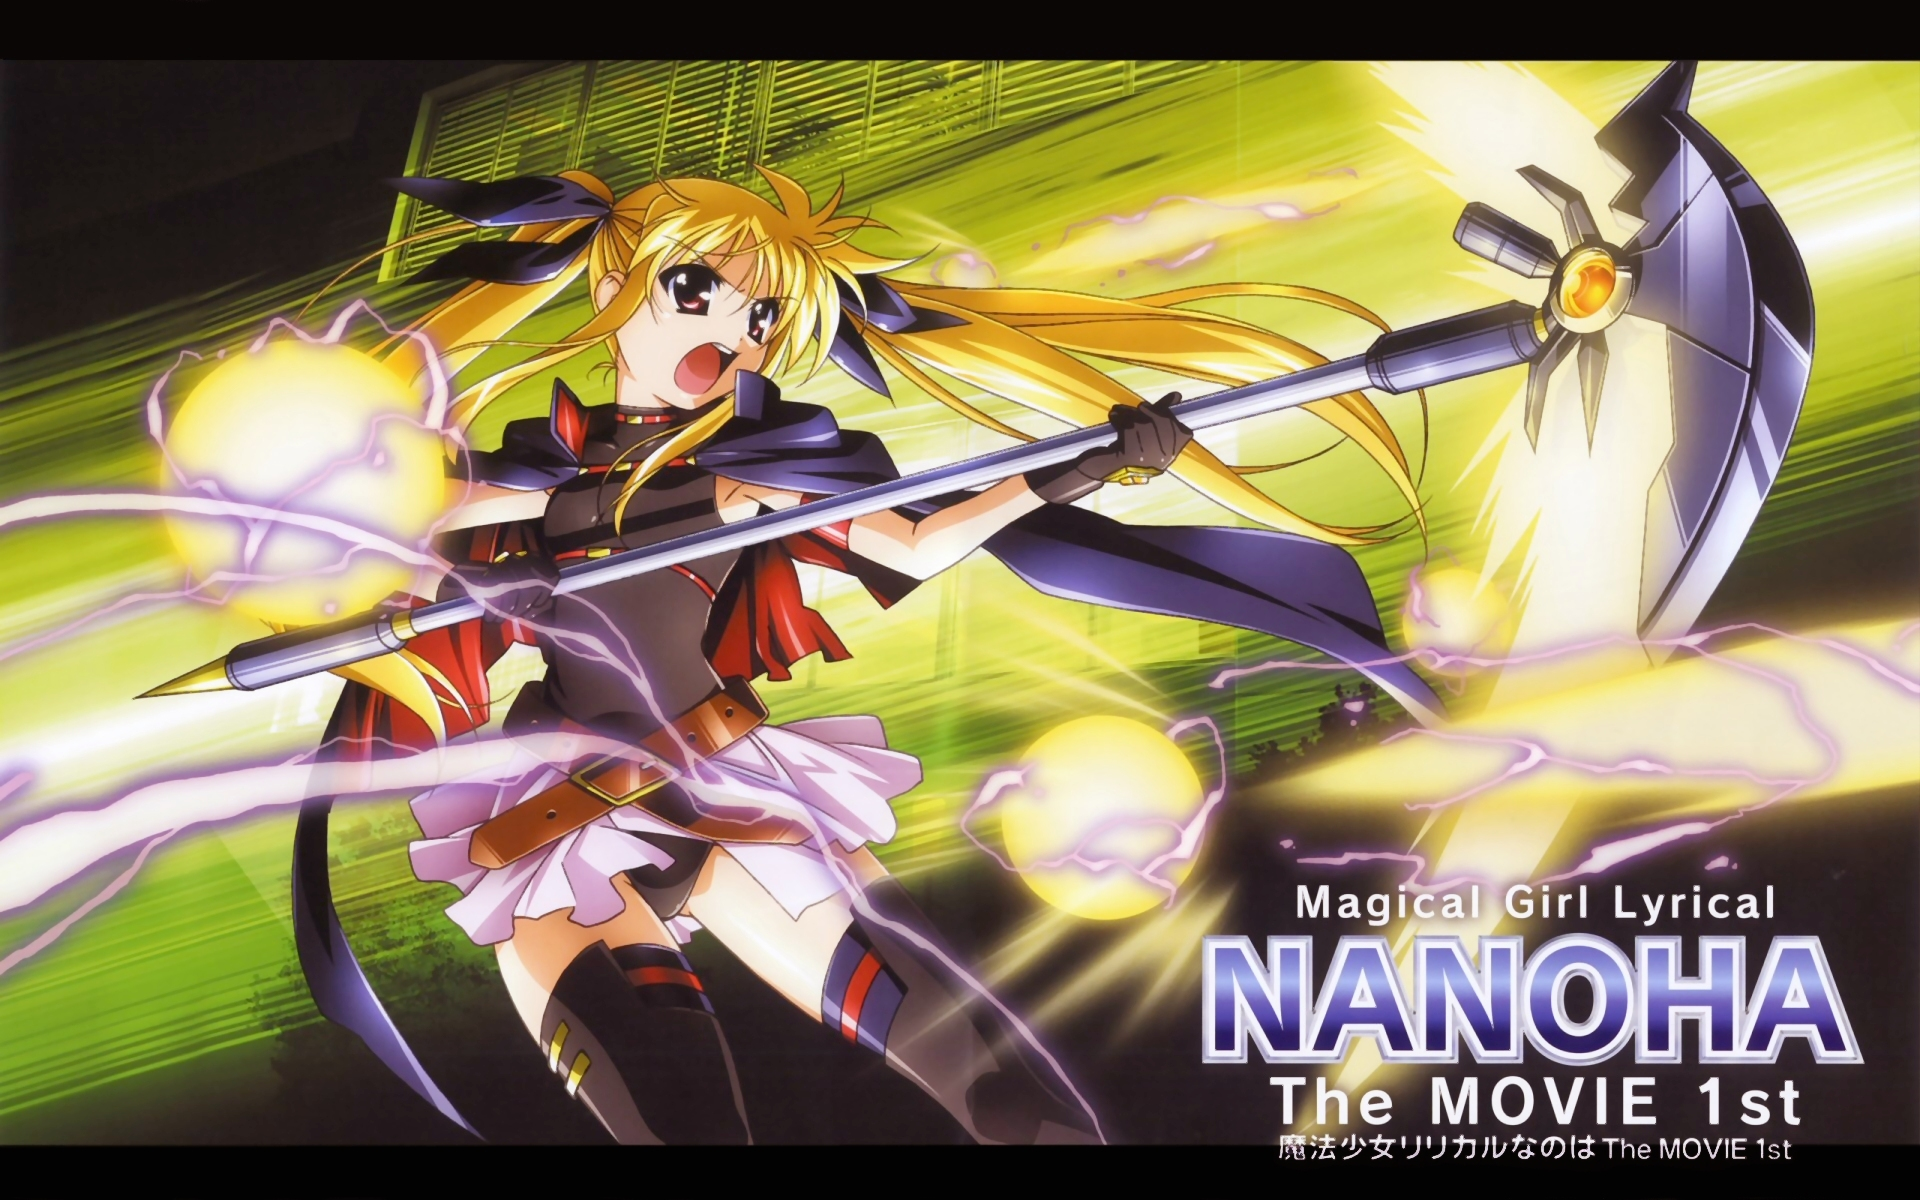 blonde_hair fate_testarossa mahou_shoujo_lyrical_nanoha mahou_shoujo_lyrical_nanoha_the_movie_1st twintails weapon